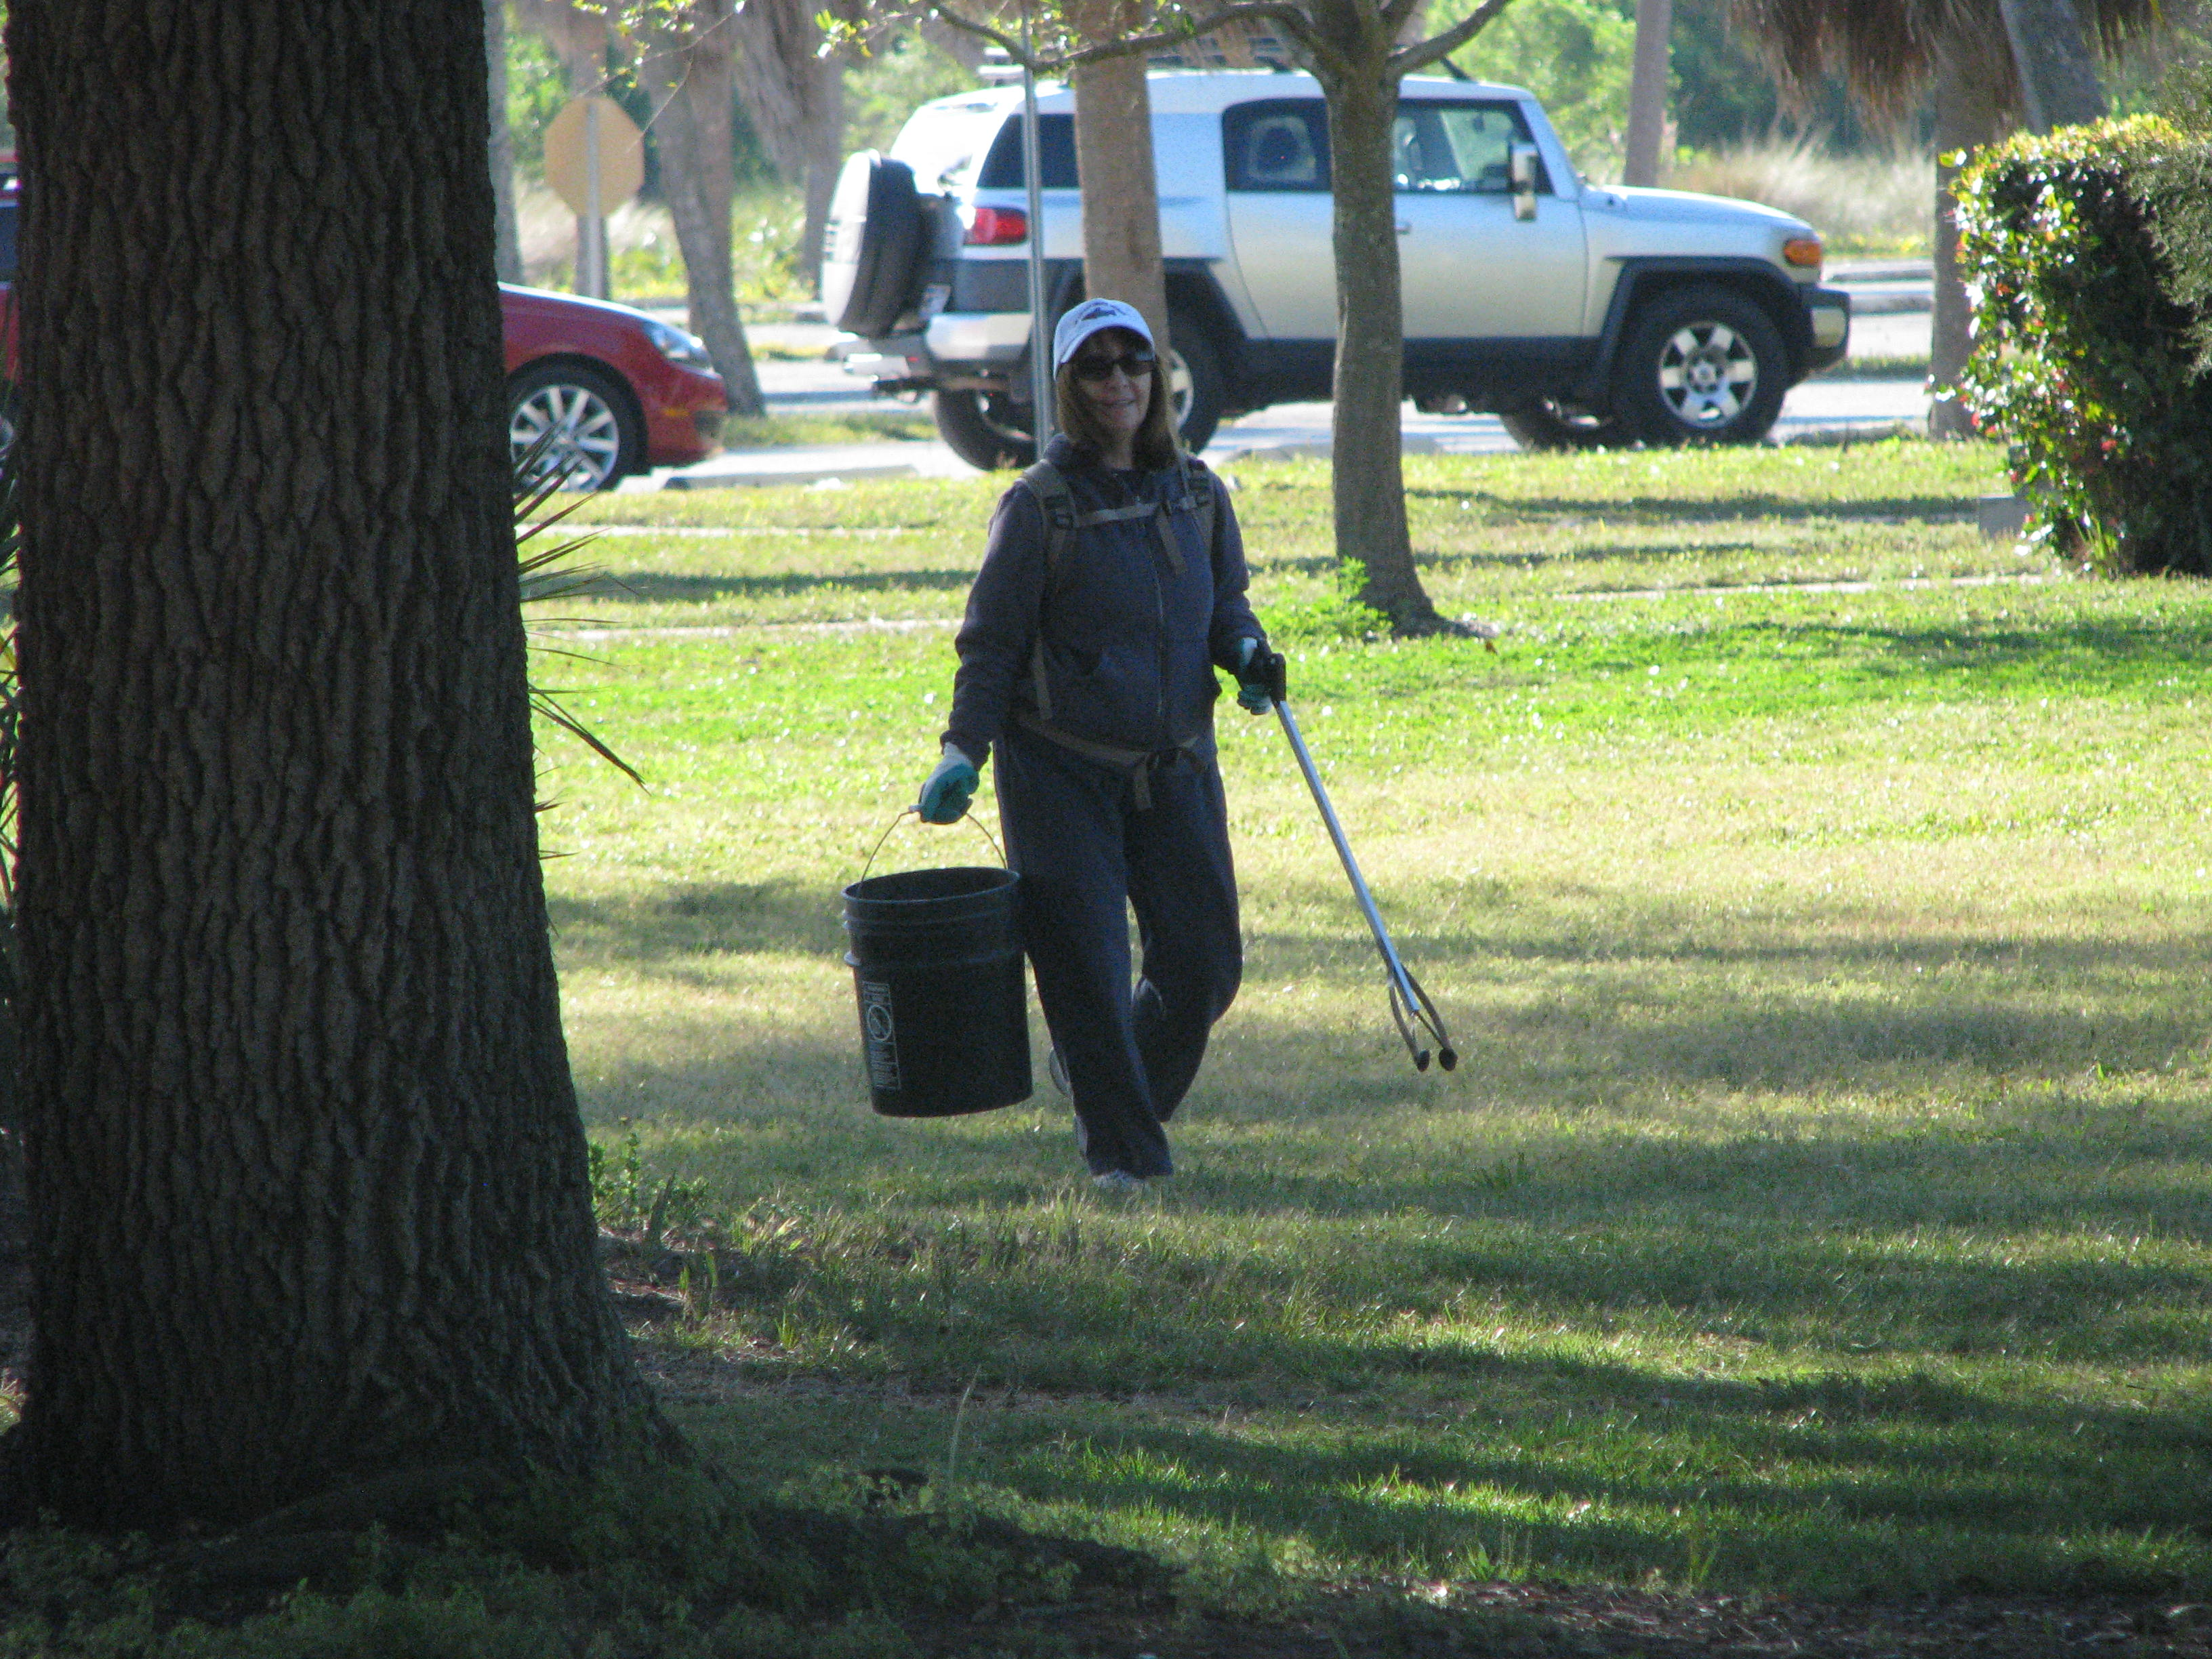 Gail on the hunt for trash